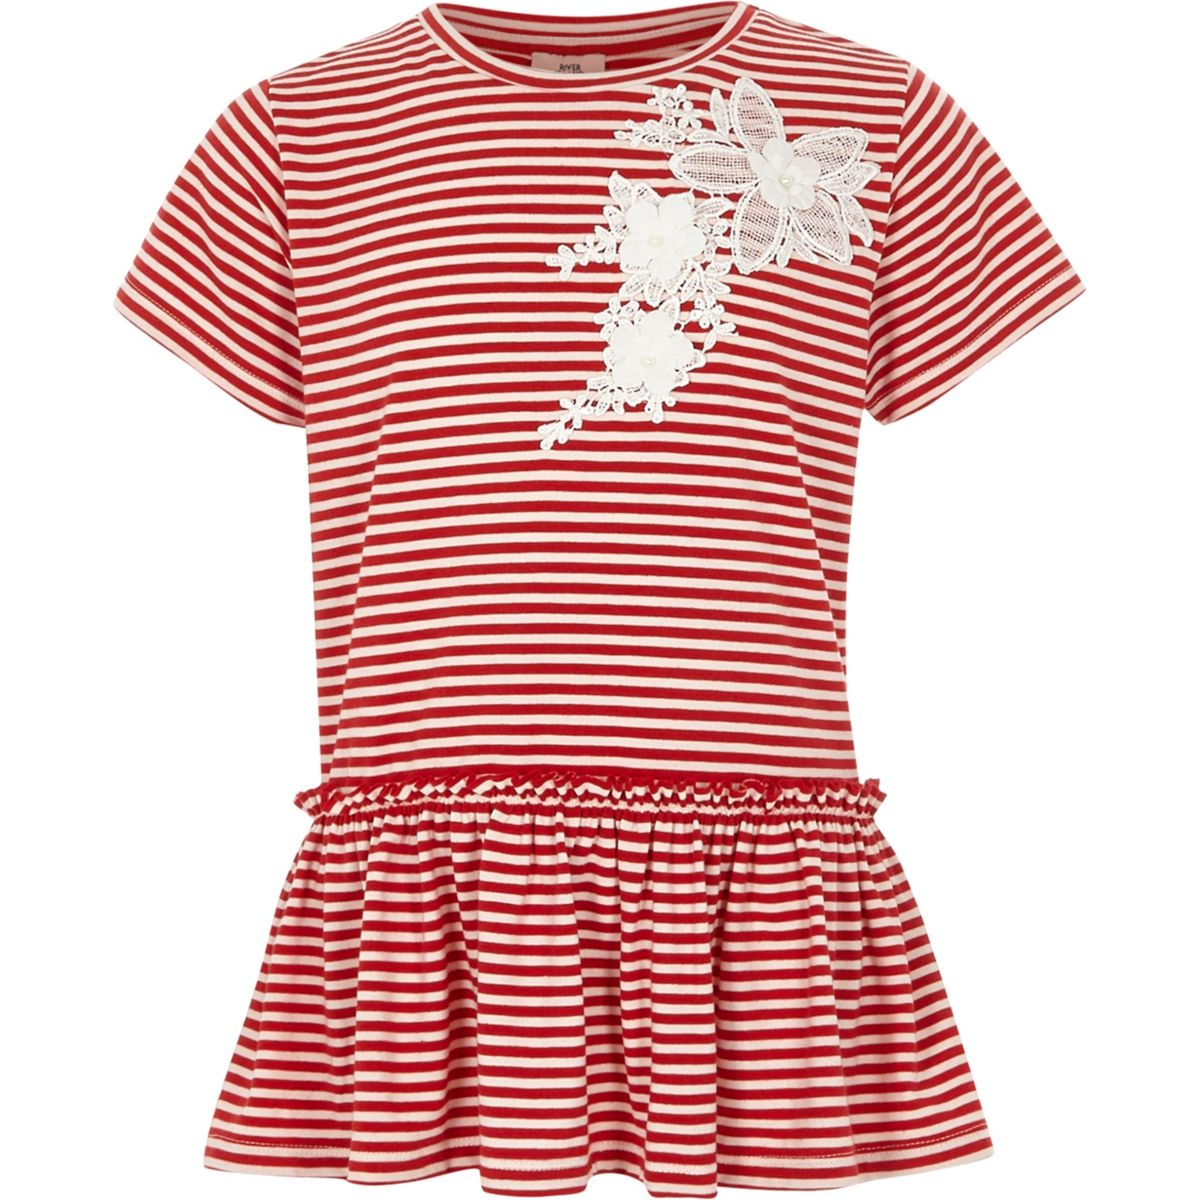 Girls red stripe lace applique frill T-shirt